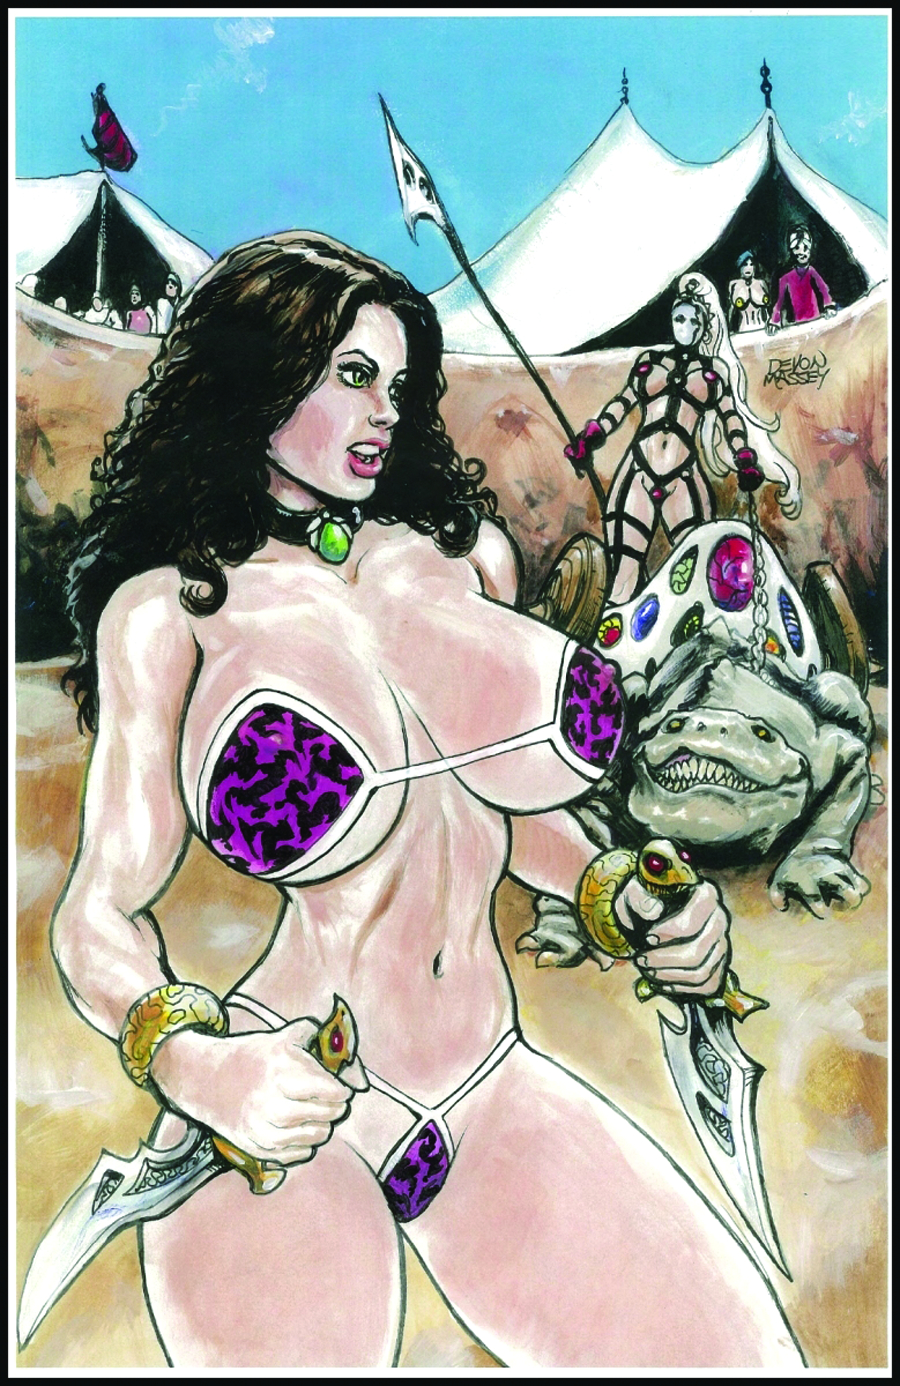 CAVEWOMAN OASIS #1 (OF 2)